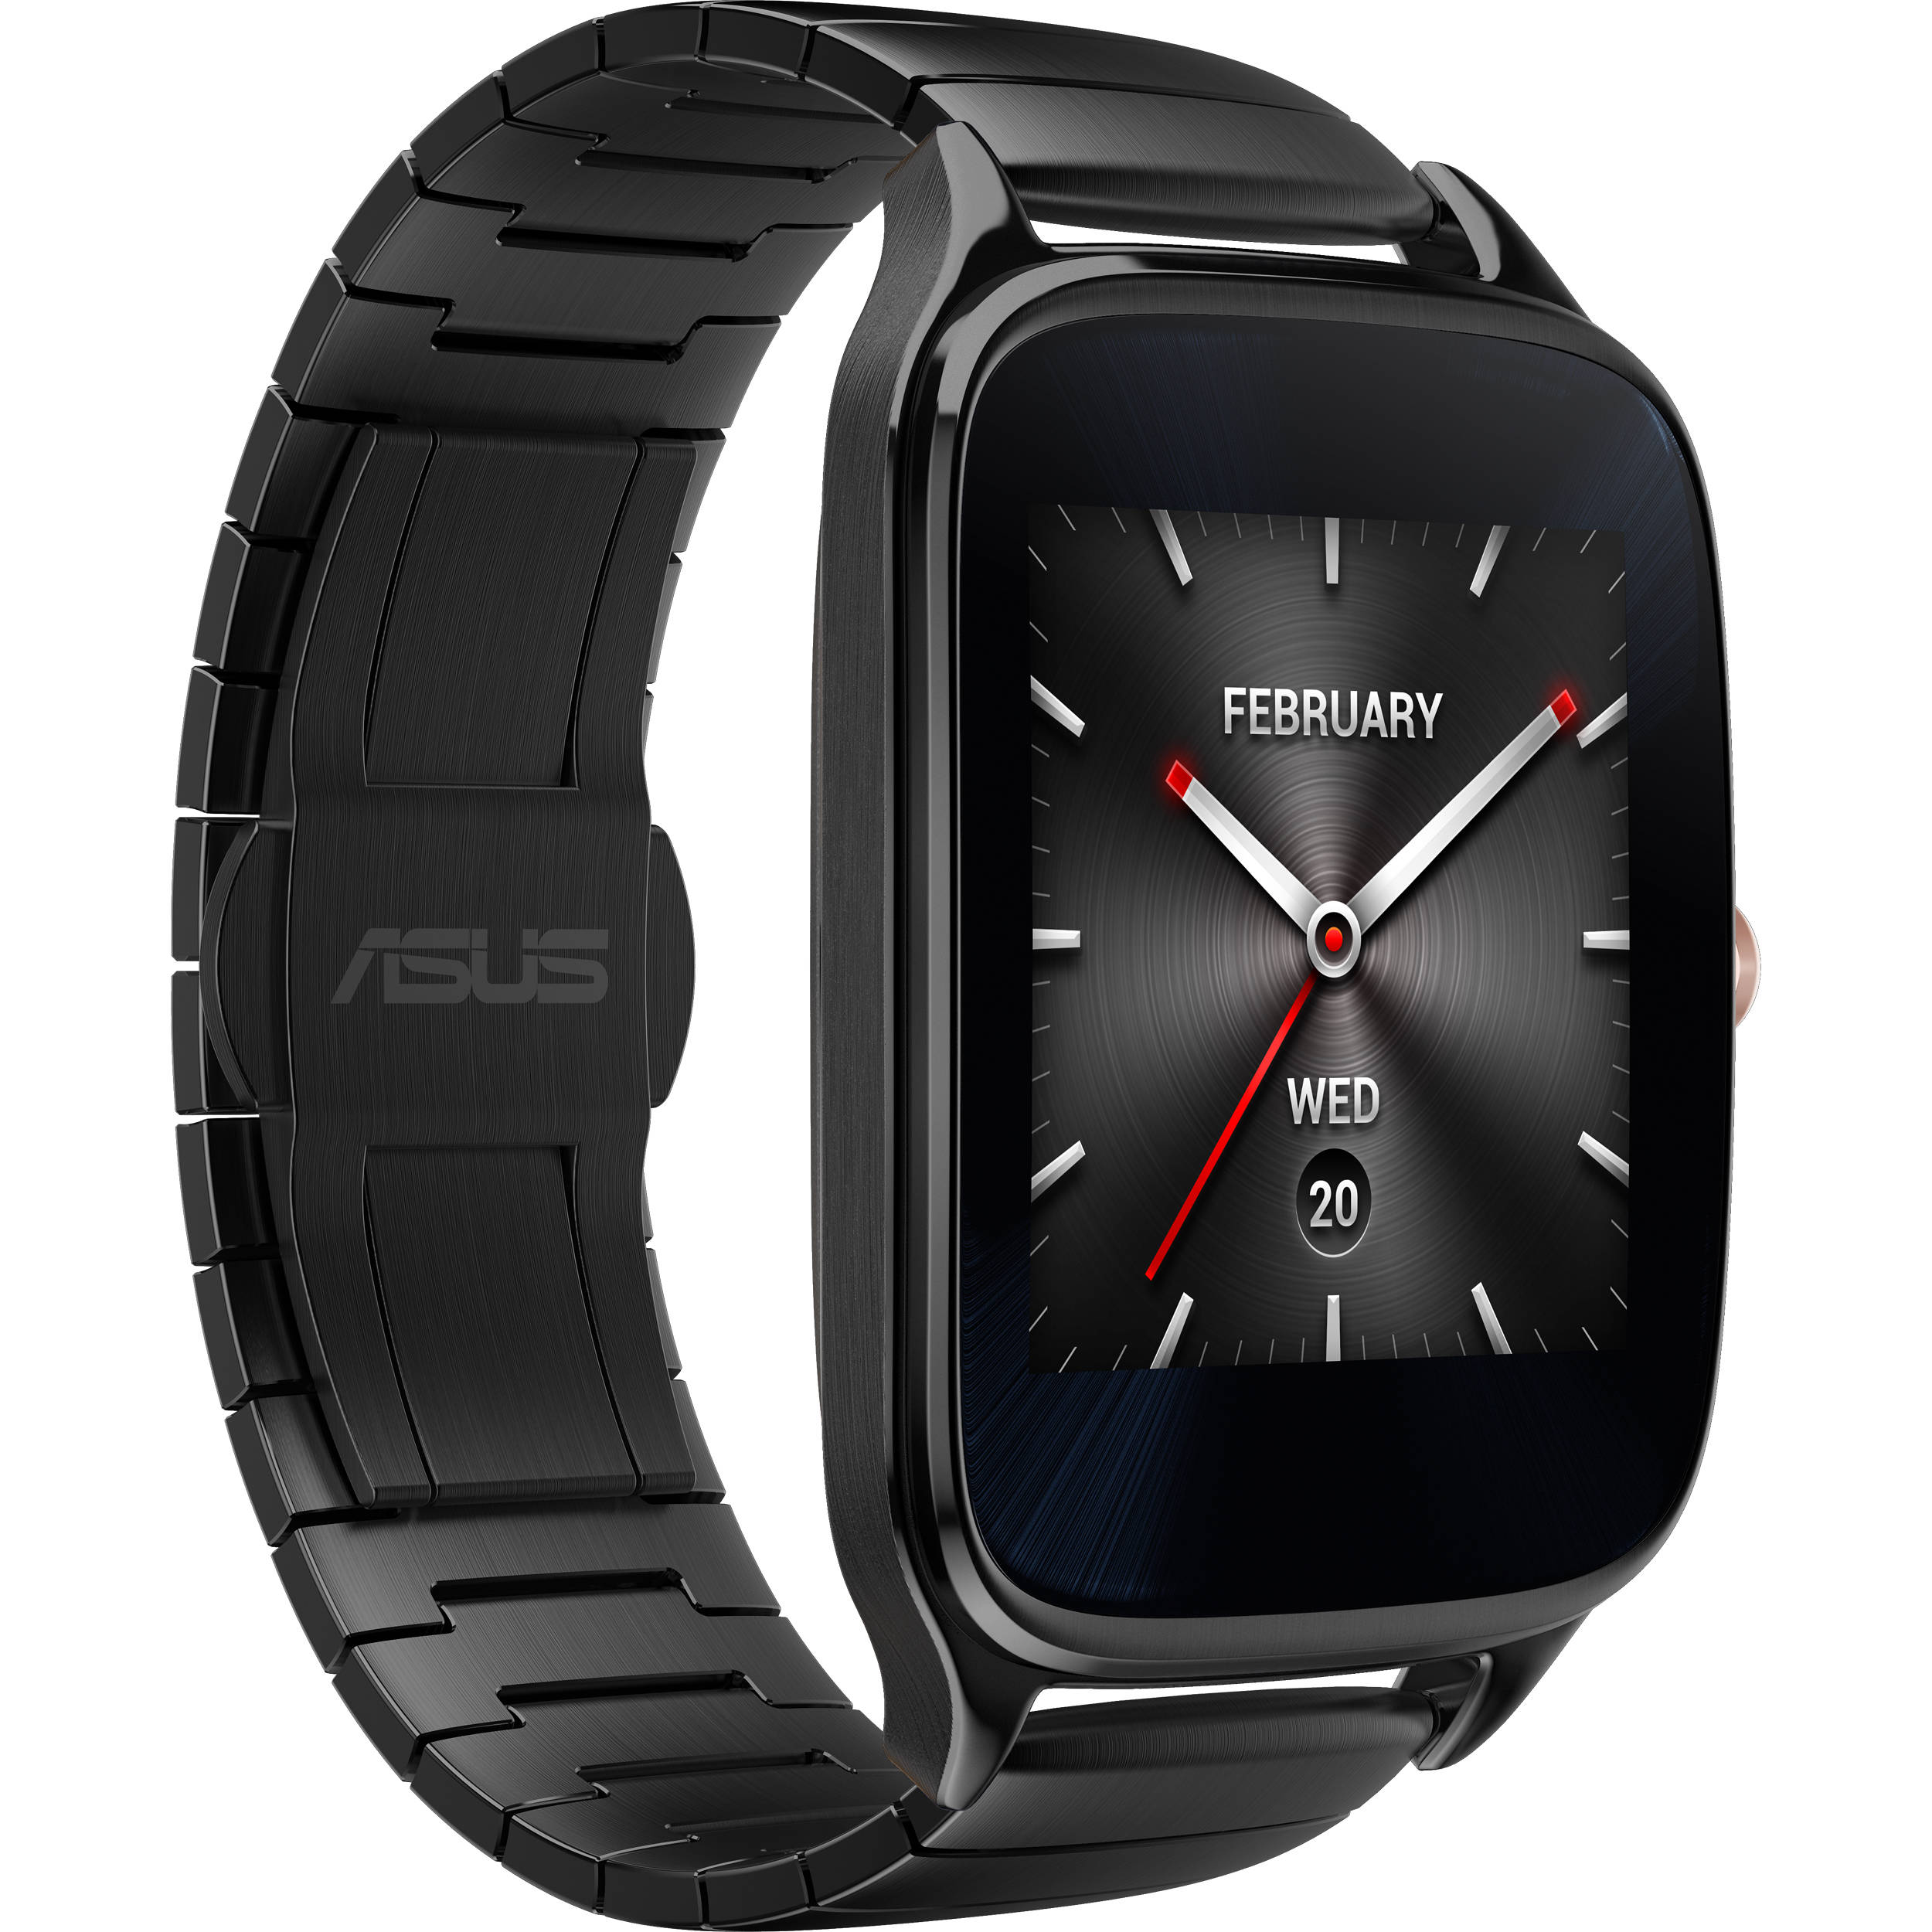 822b7ed13 ASUS ZenWatch 2 Android Wear Smartwatch WI501Q-GM-GR B&H Photo